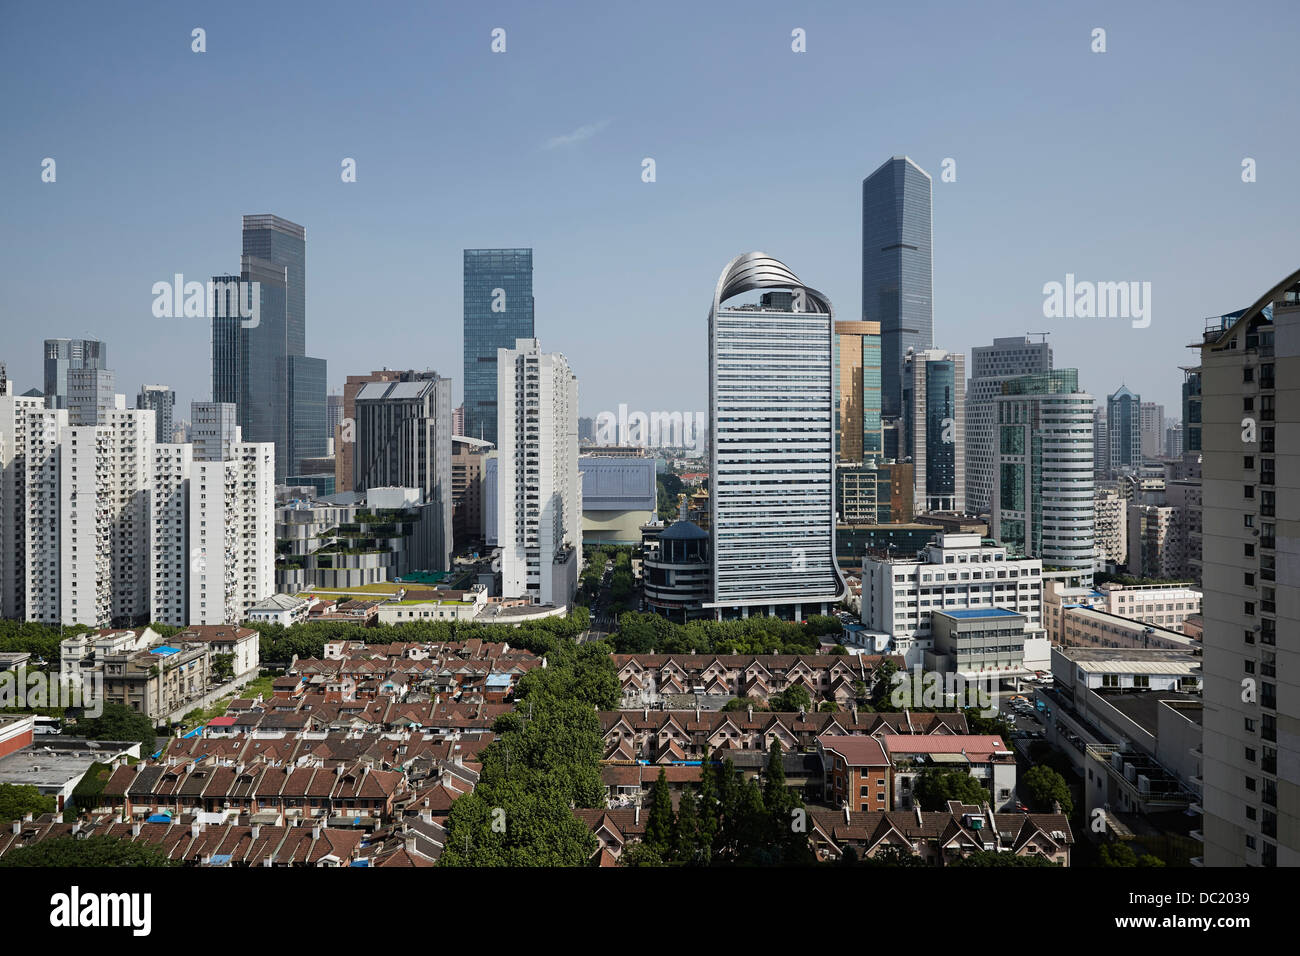 Portrait de la ville de Shanghai, Chine Photo Stock